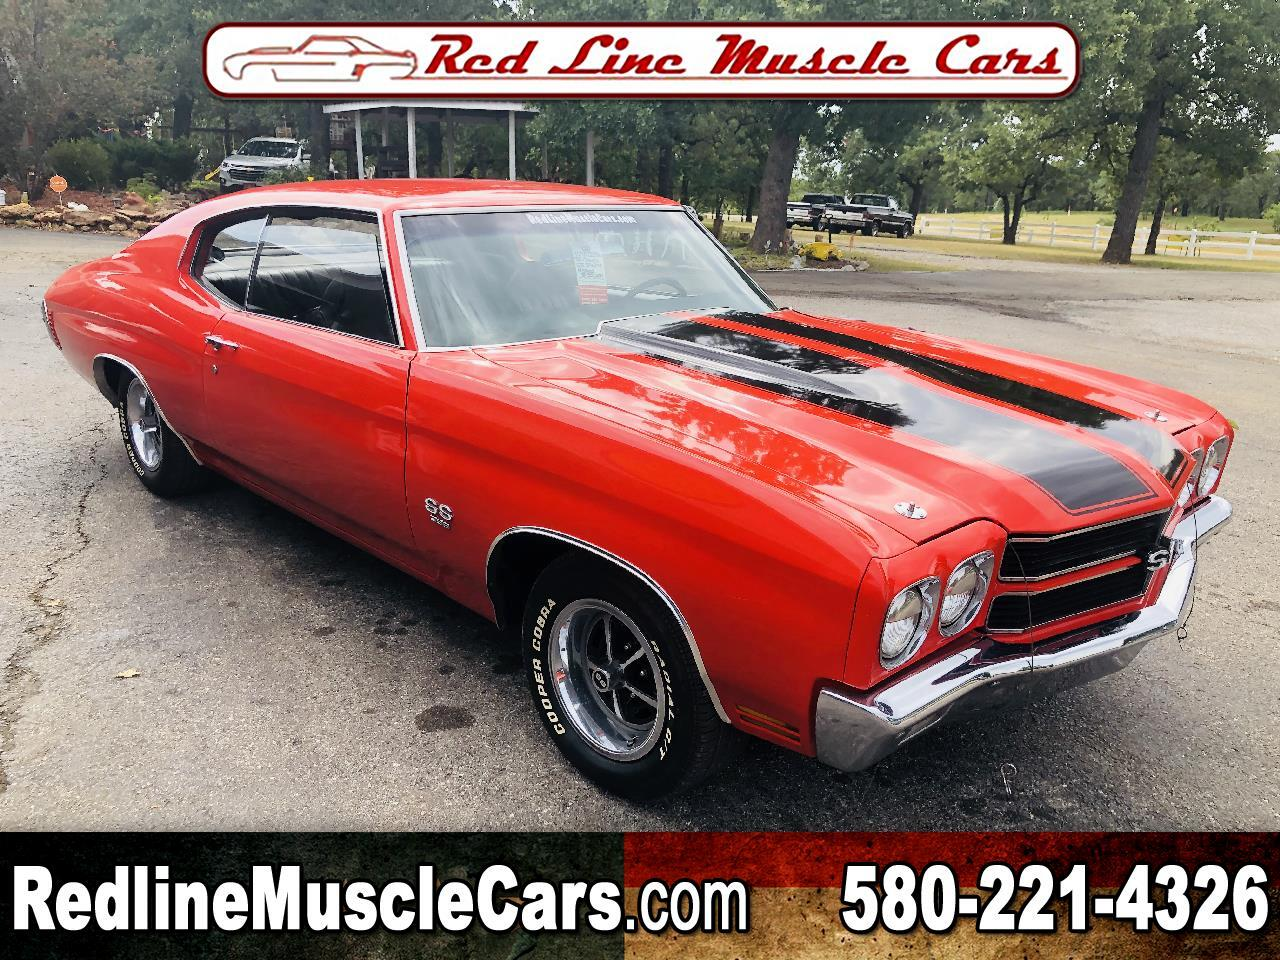 1970 Chevrolet Chevelle Malibu SS Super Sport 396 4 speed